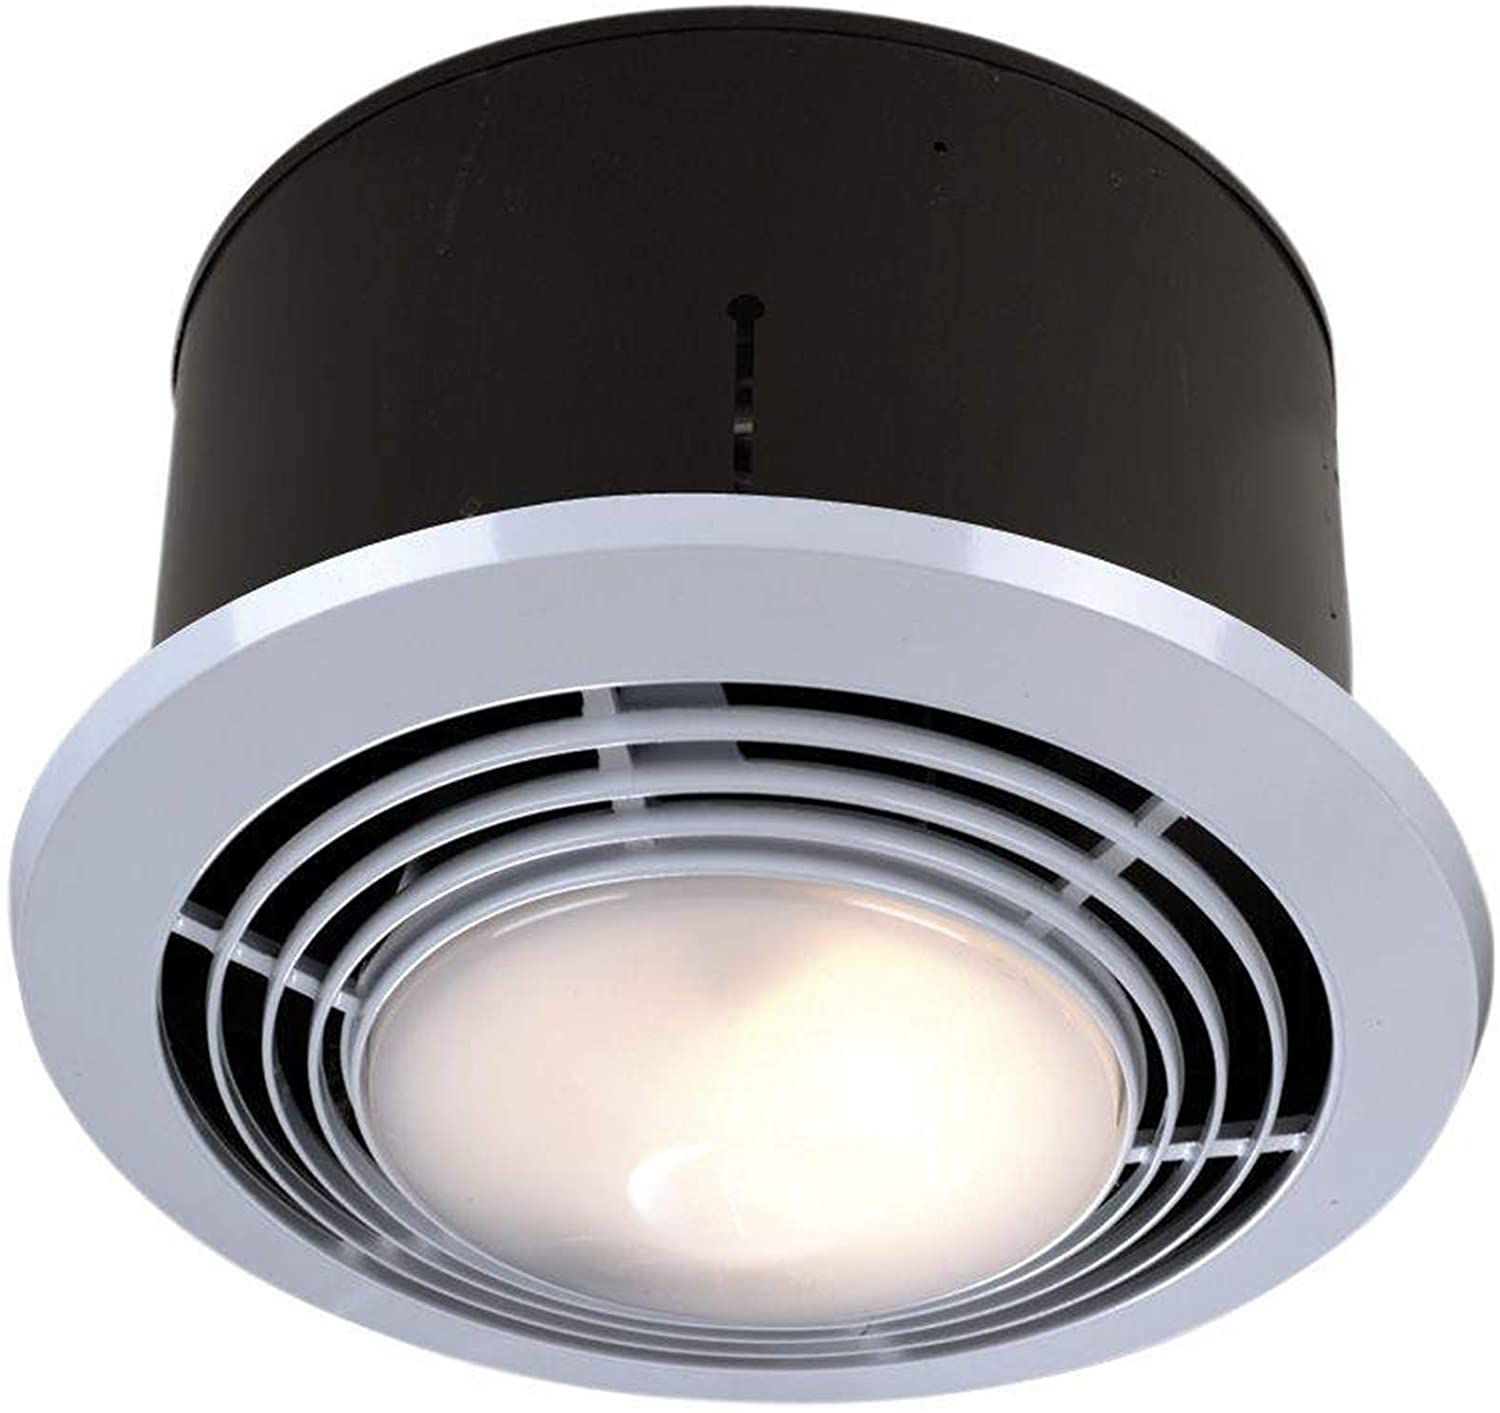 The 6 Best Bathroom Exhaust Fans Of 2021, What Is The Best Bathroom Exhaust Fan With Light